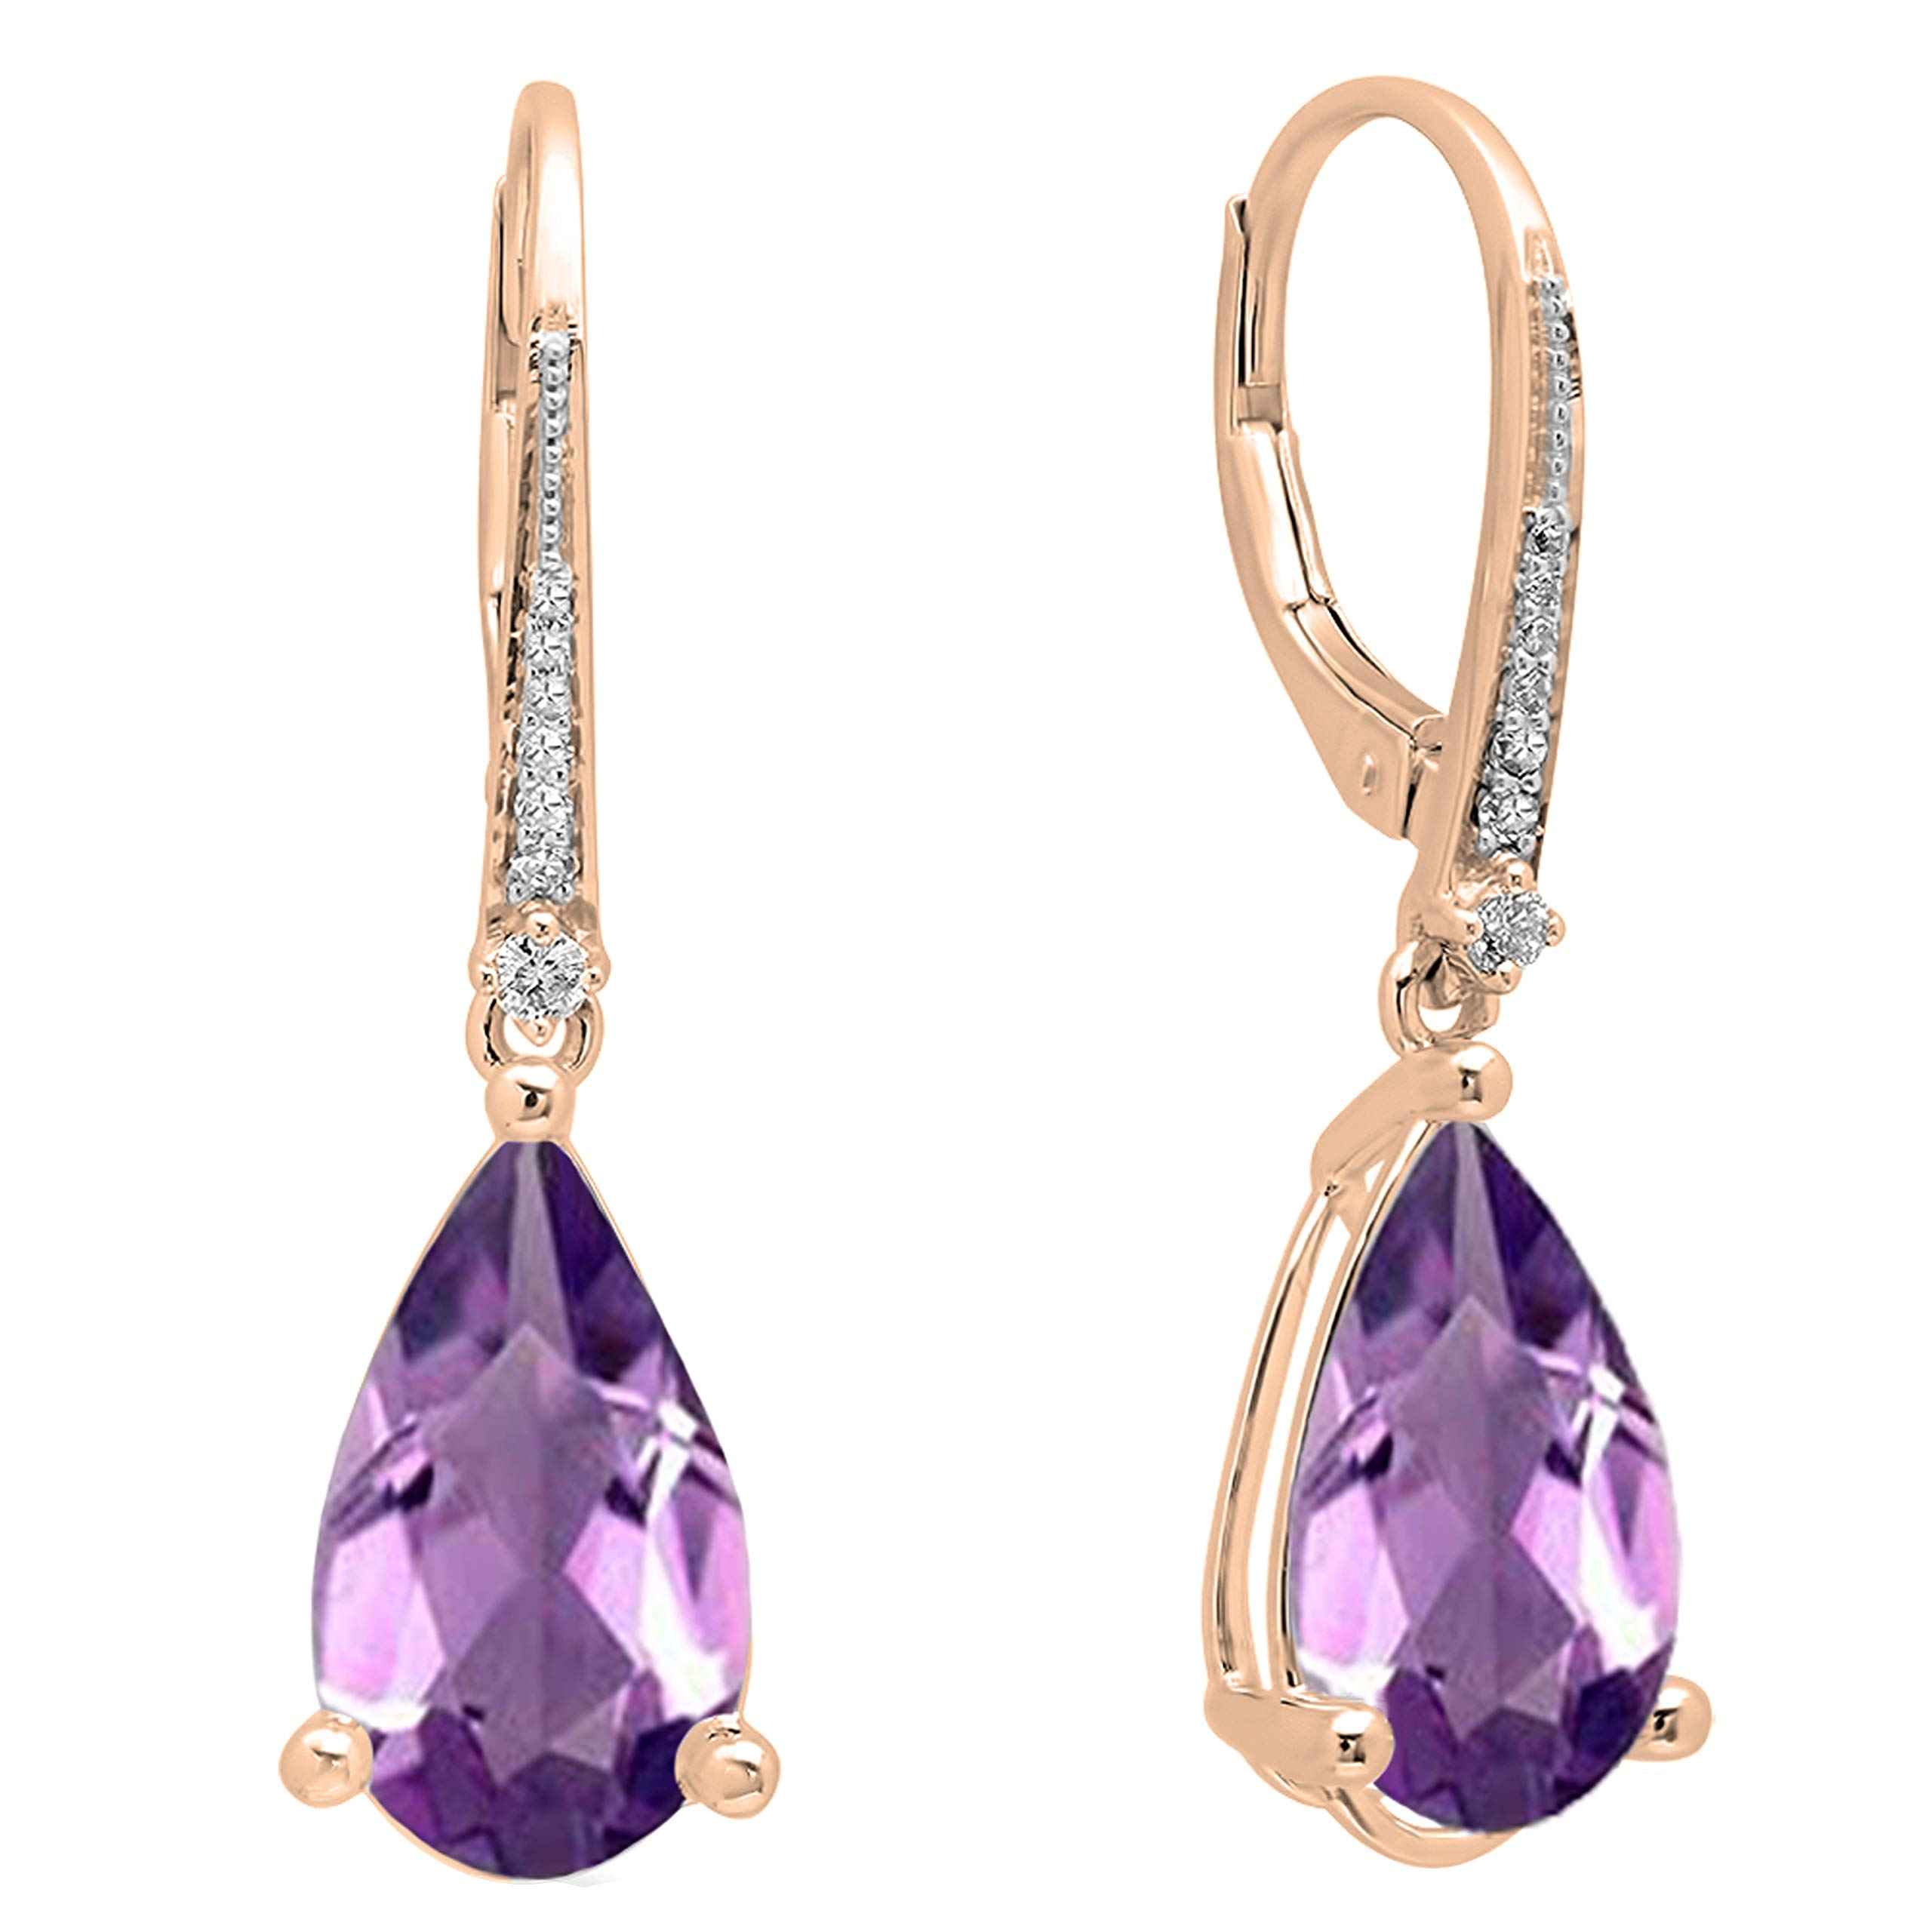 Dazzlingrock Collection 14X8 mm Each Pear Gemstone & Round White Diamond Teardrop Dangling Drop Earrings, 14K Gold